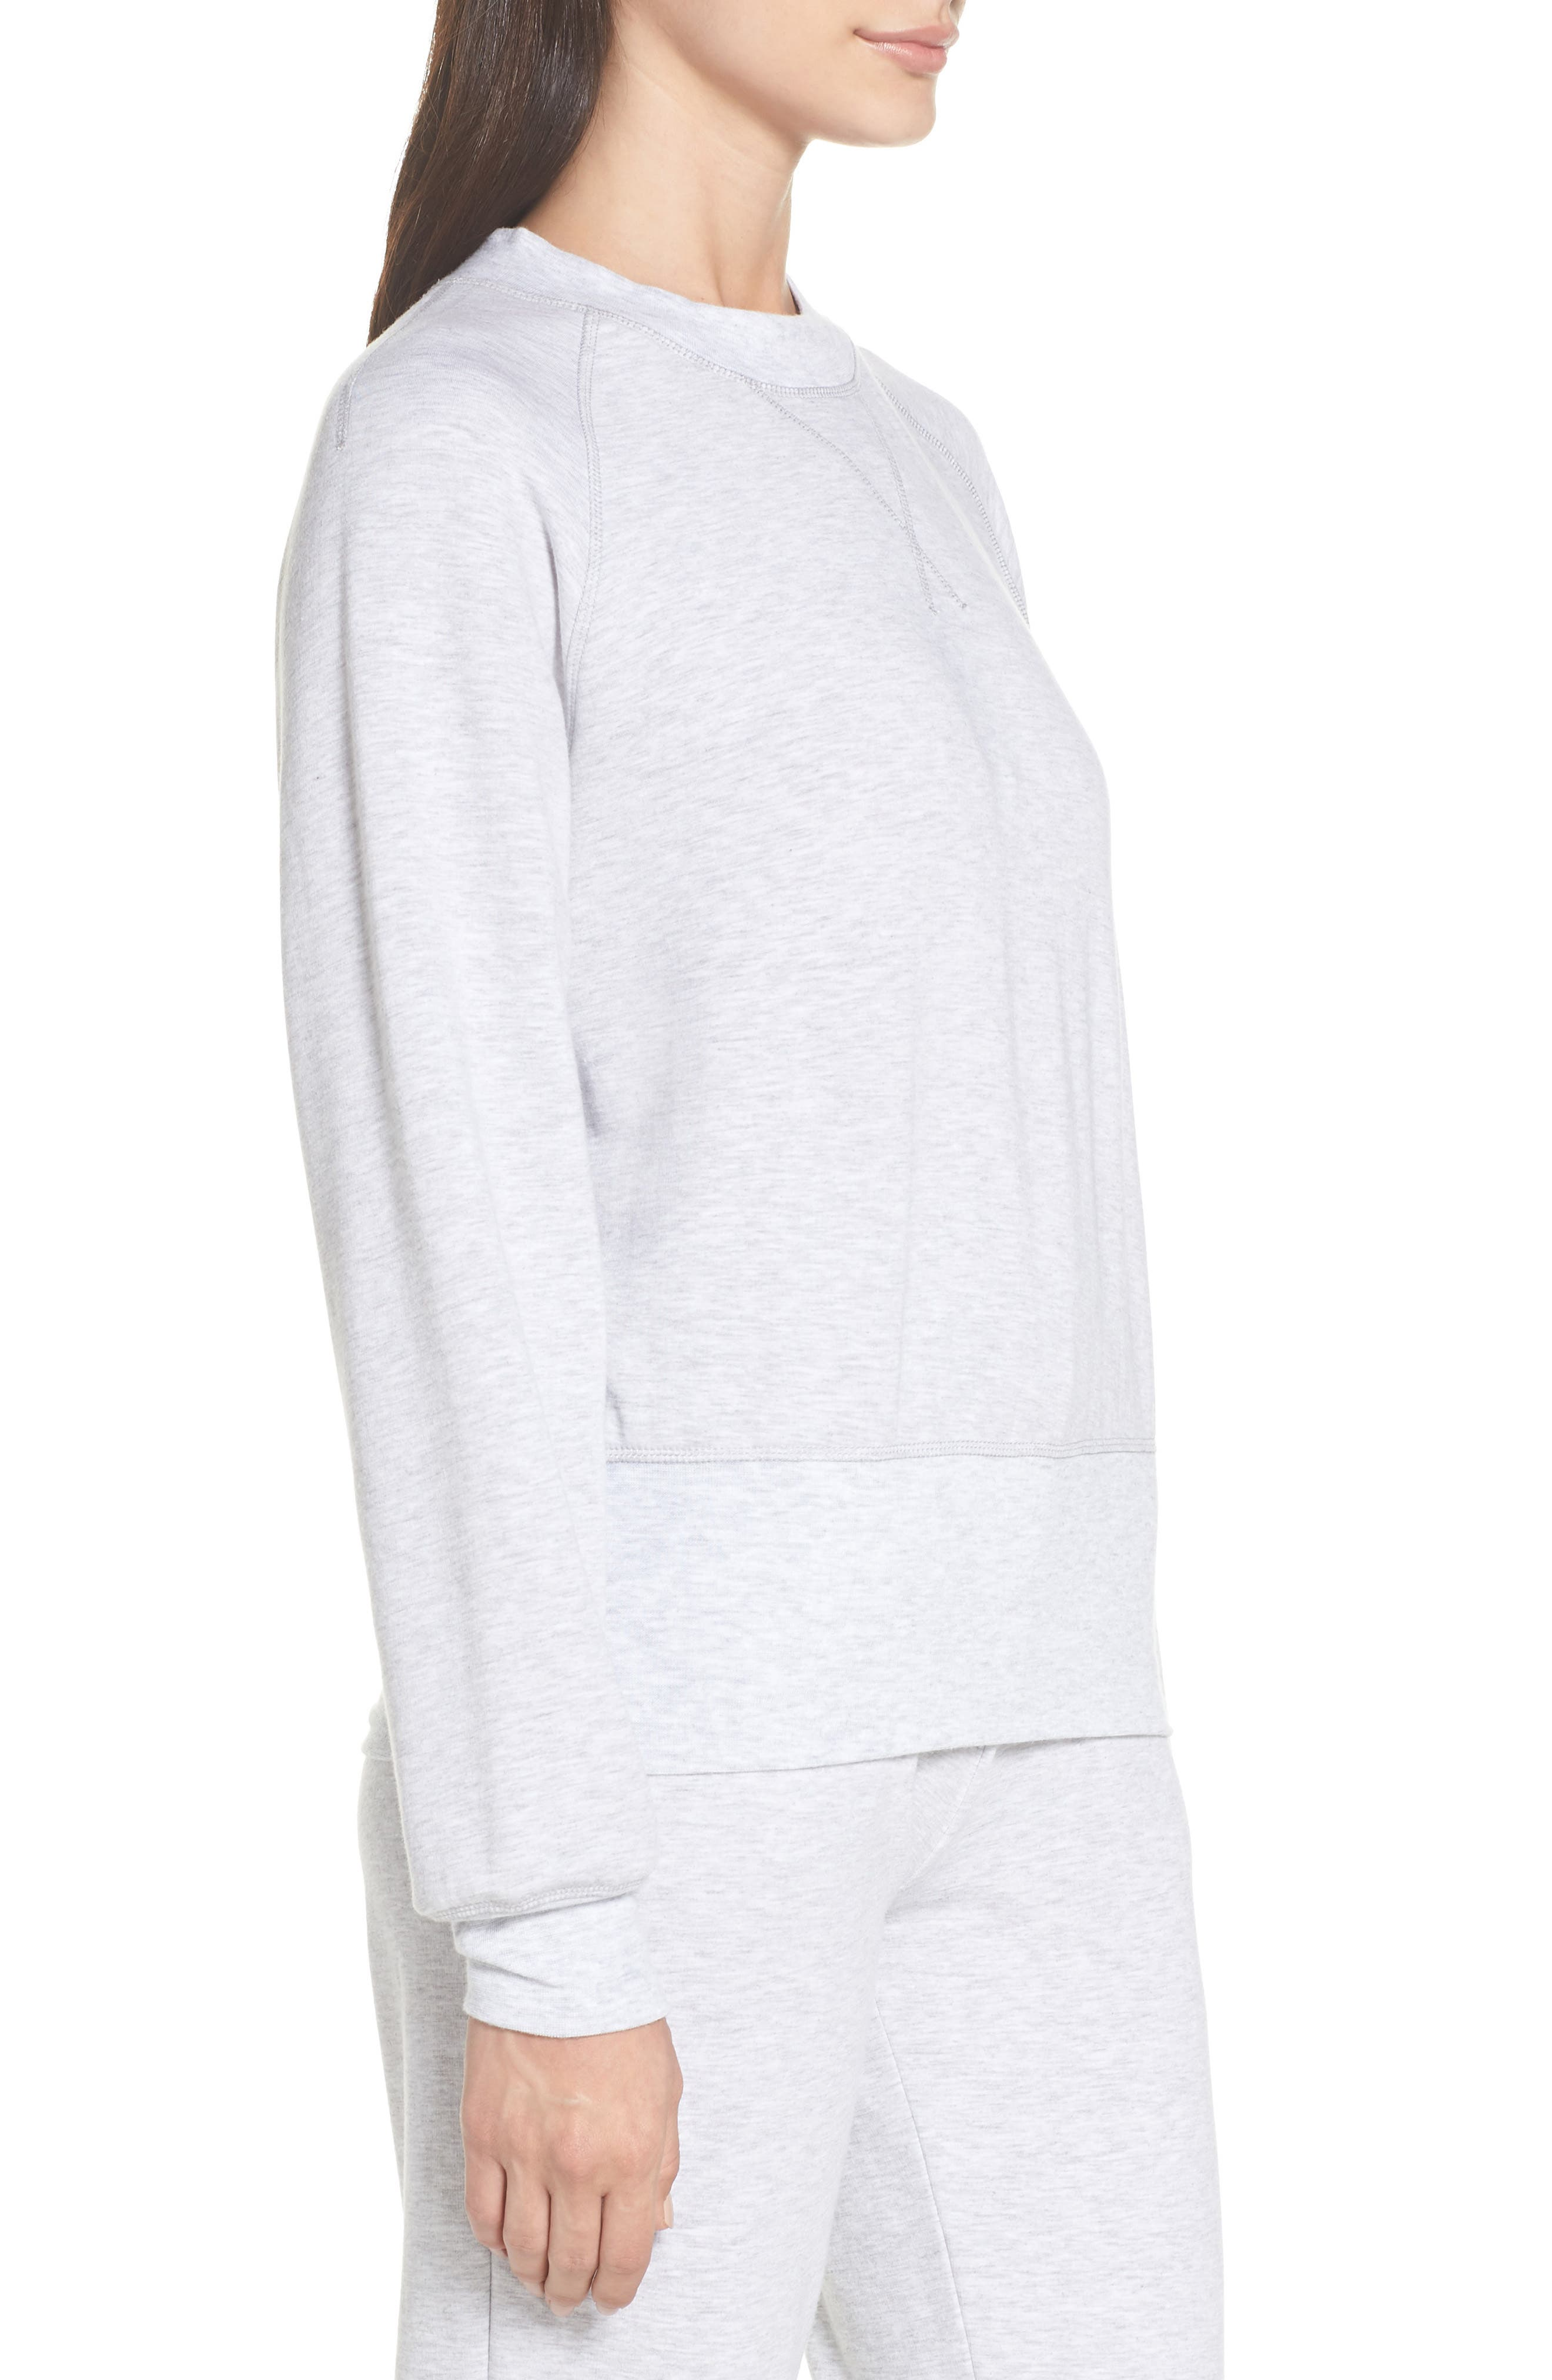 Cool Touch Sweatshirt,                             Alternate thumbnail 3, color,                             GREY